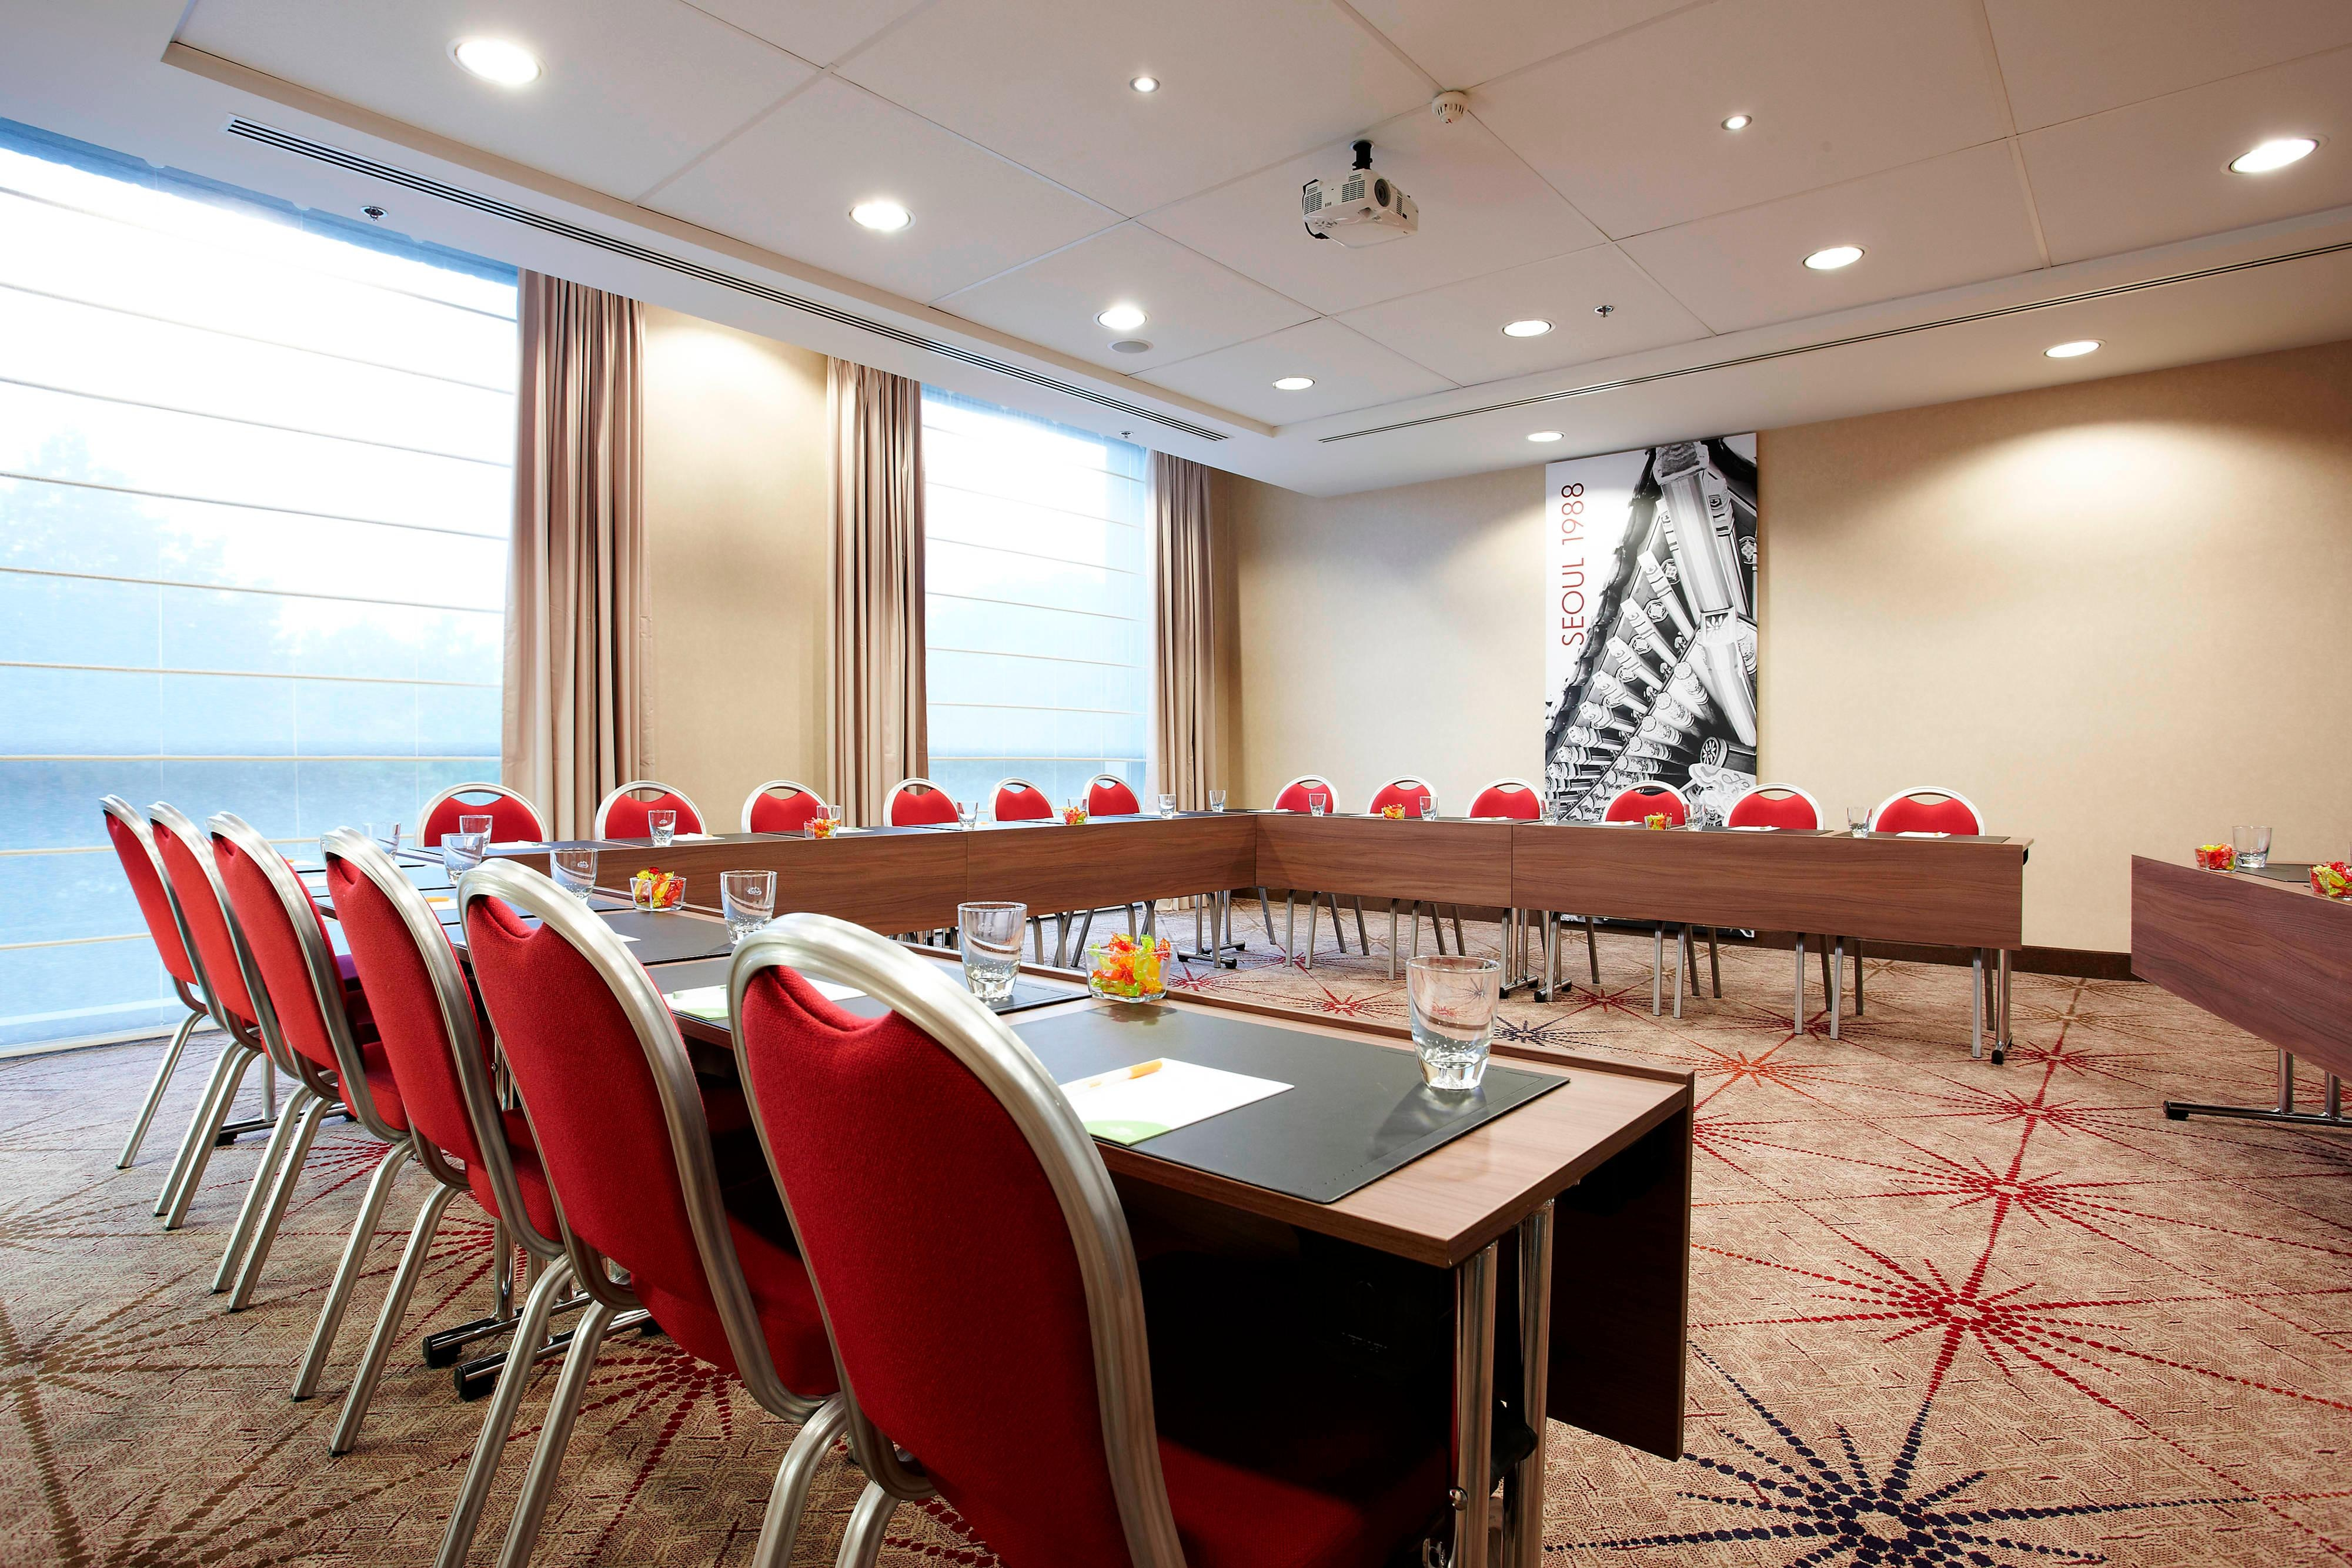 Brussels Meeting Room